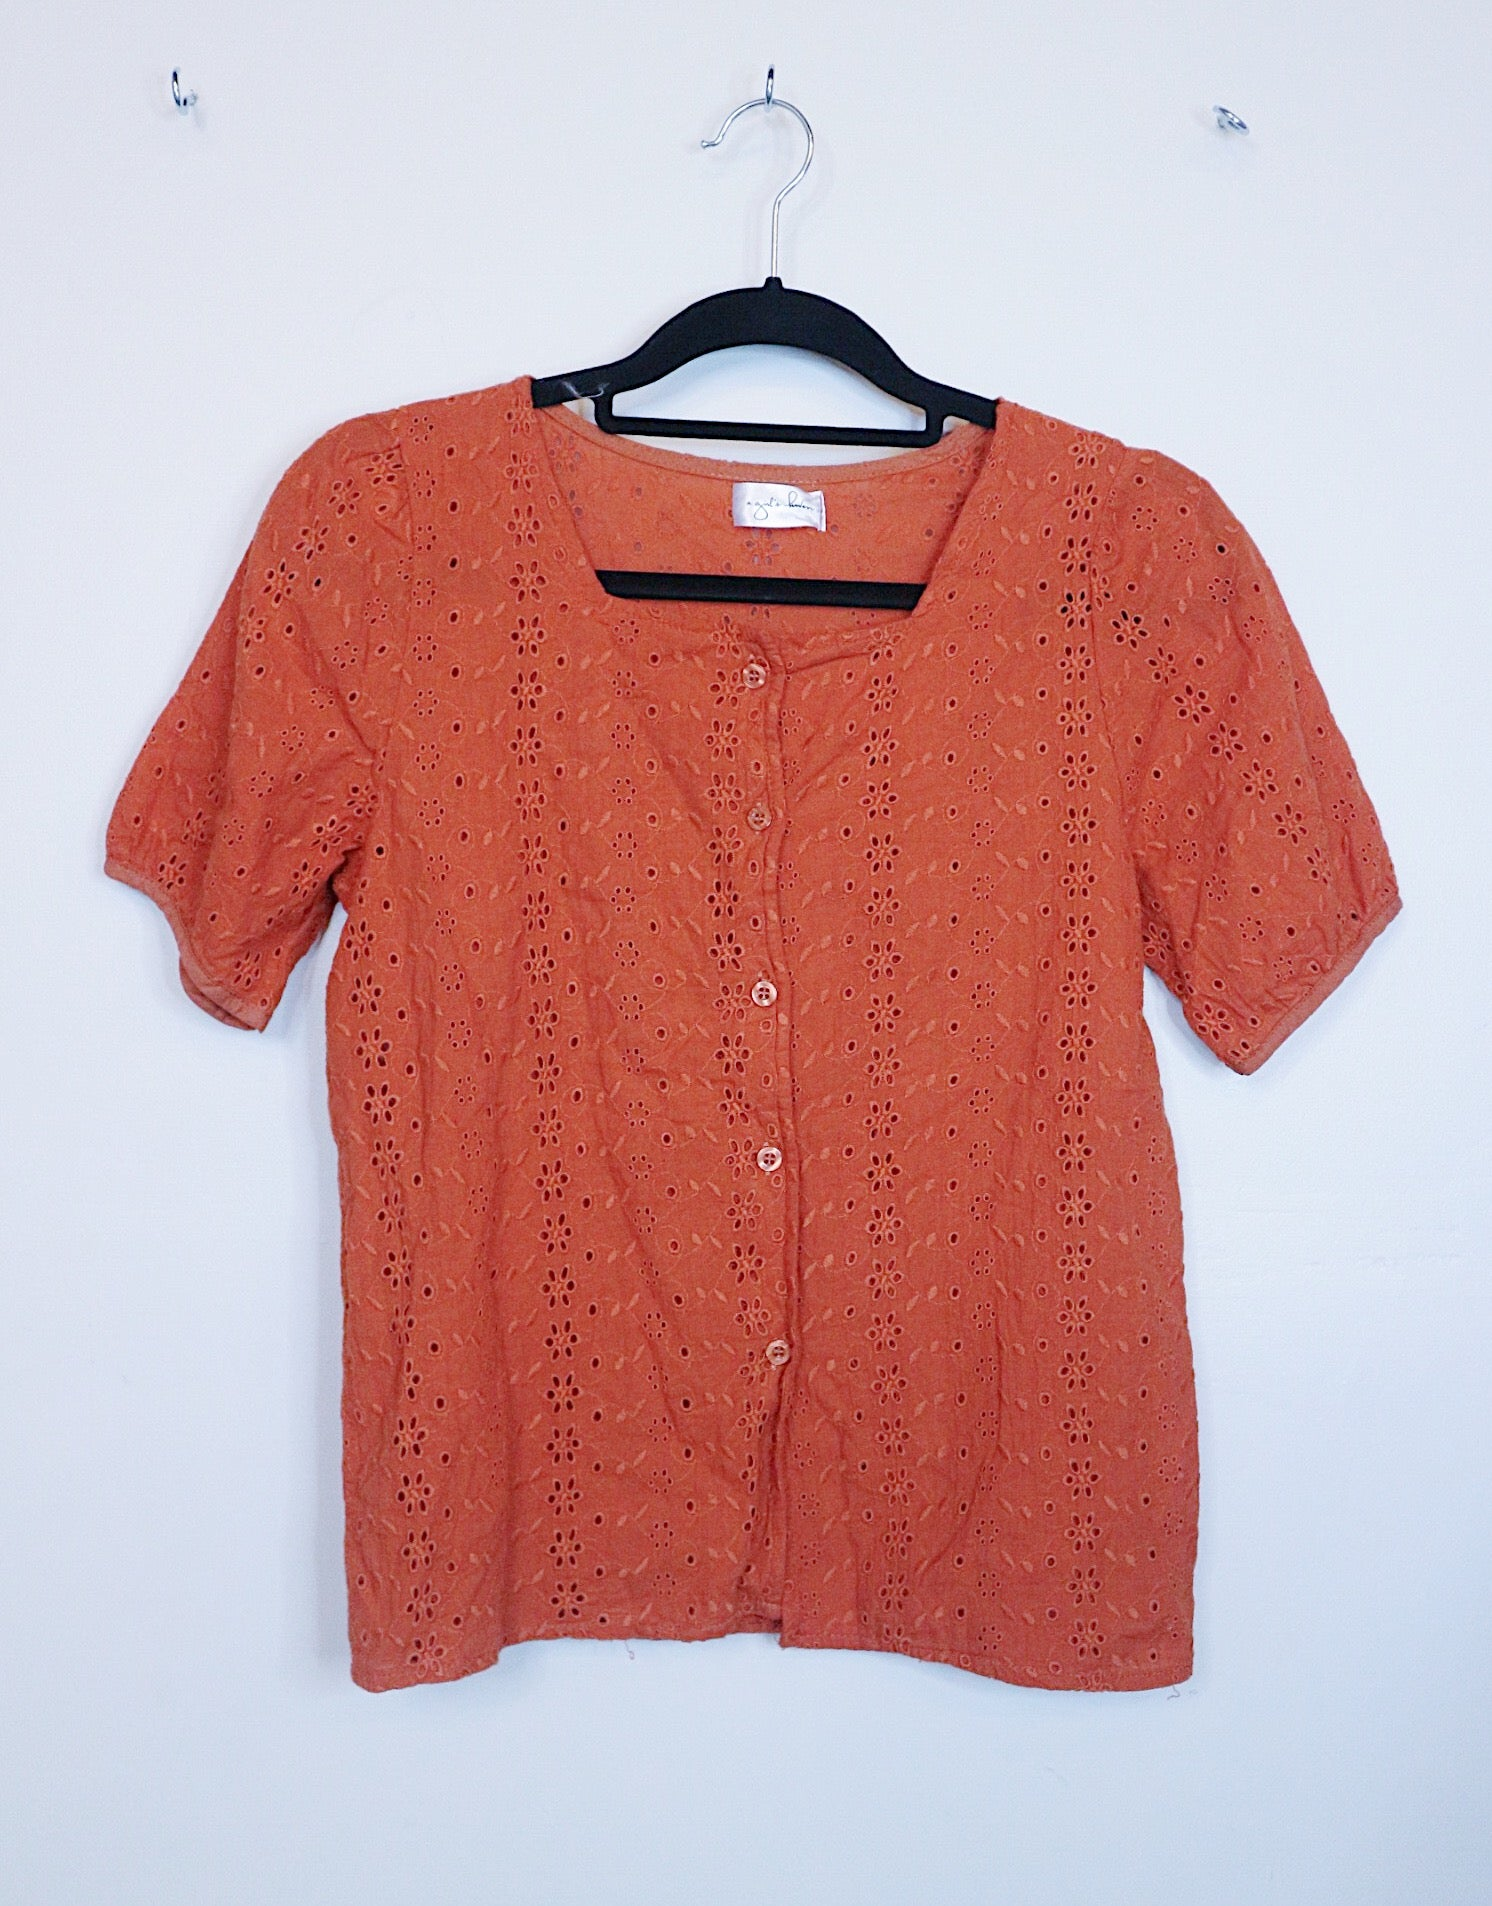 A Girl's Haven orange eyelet top